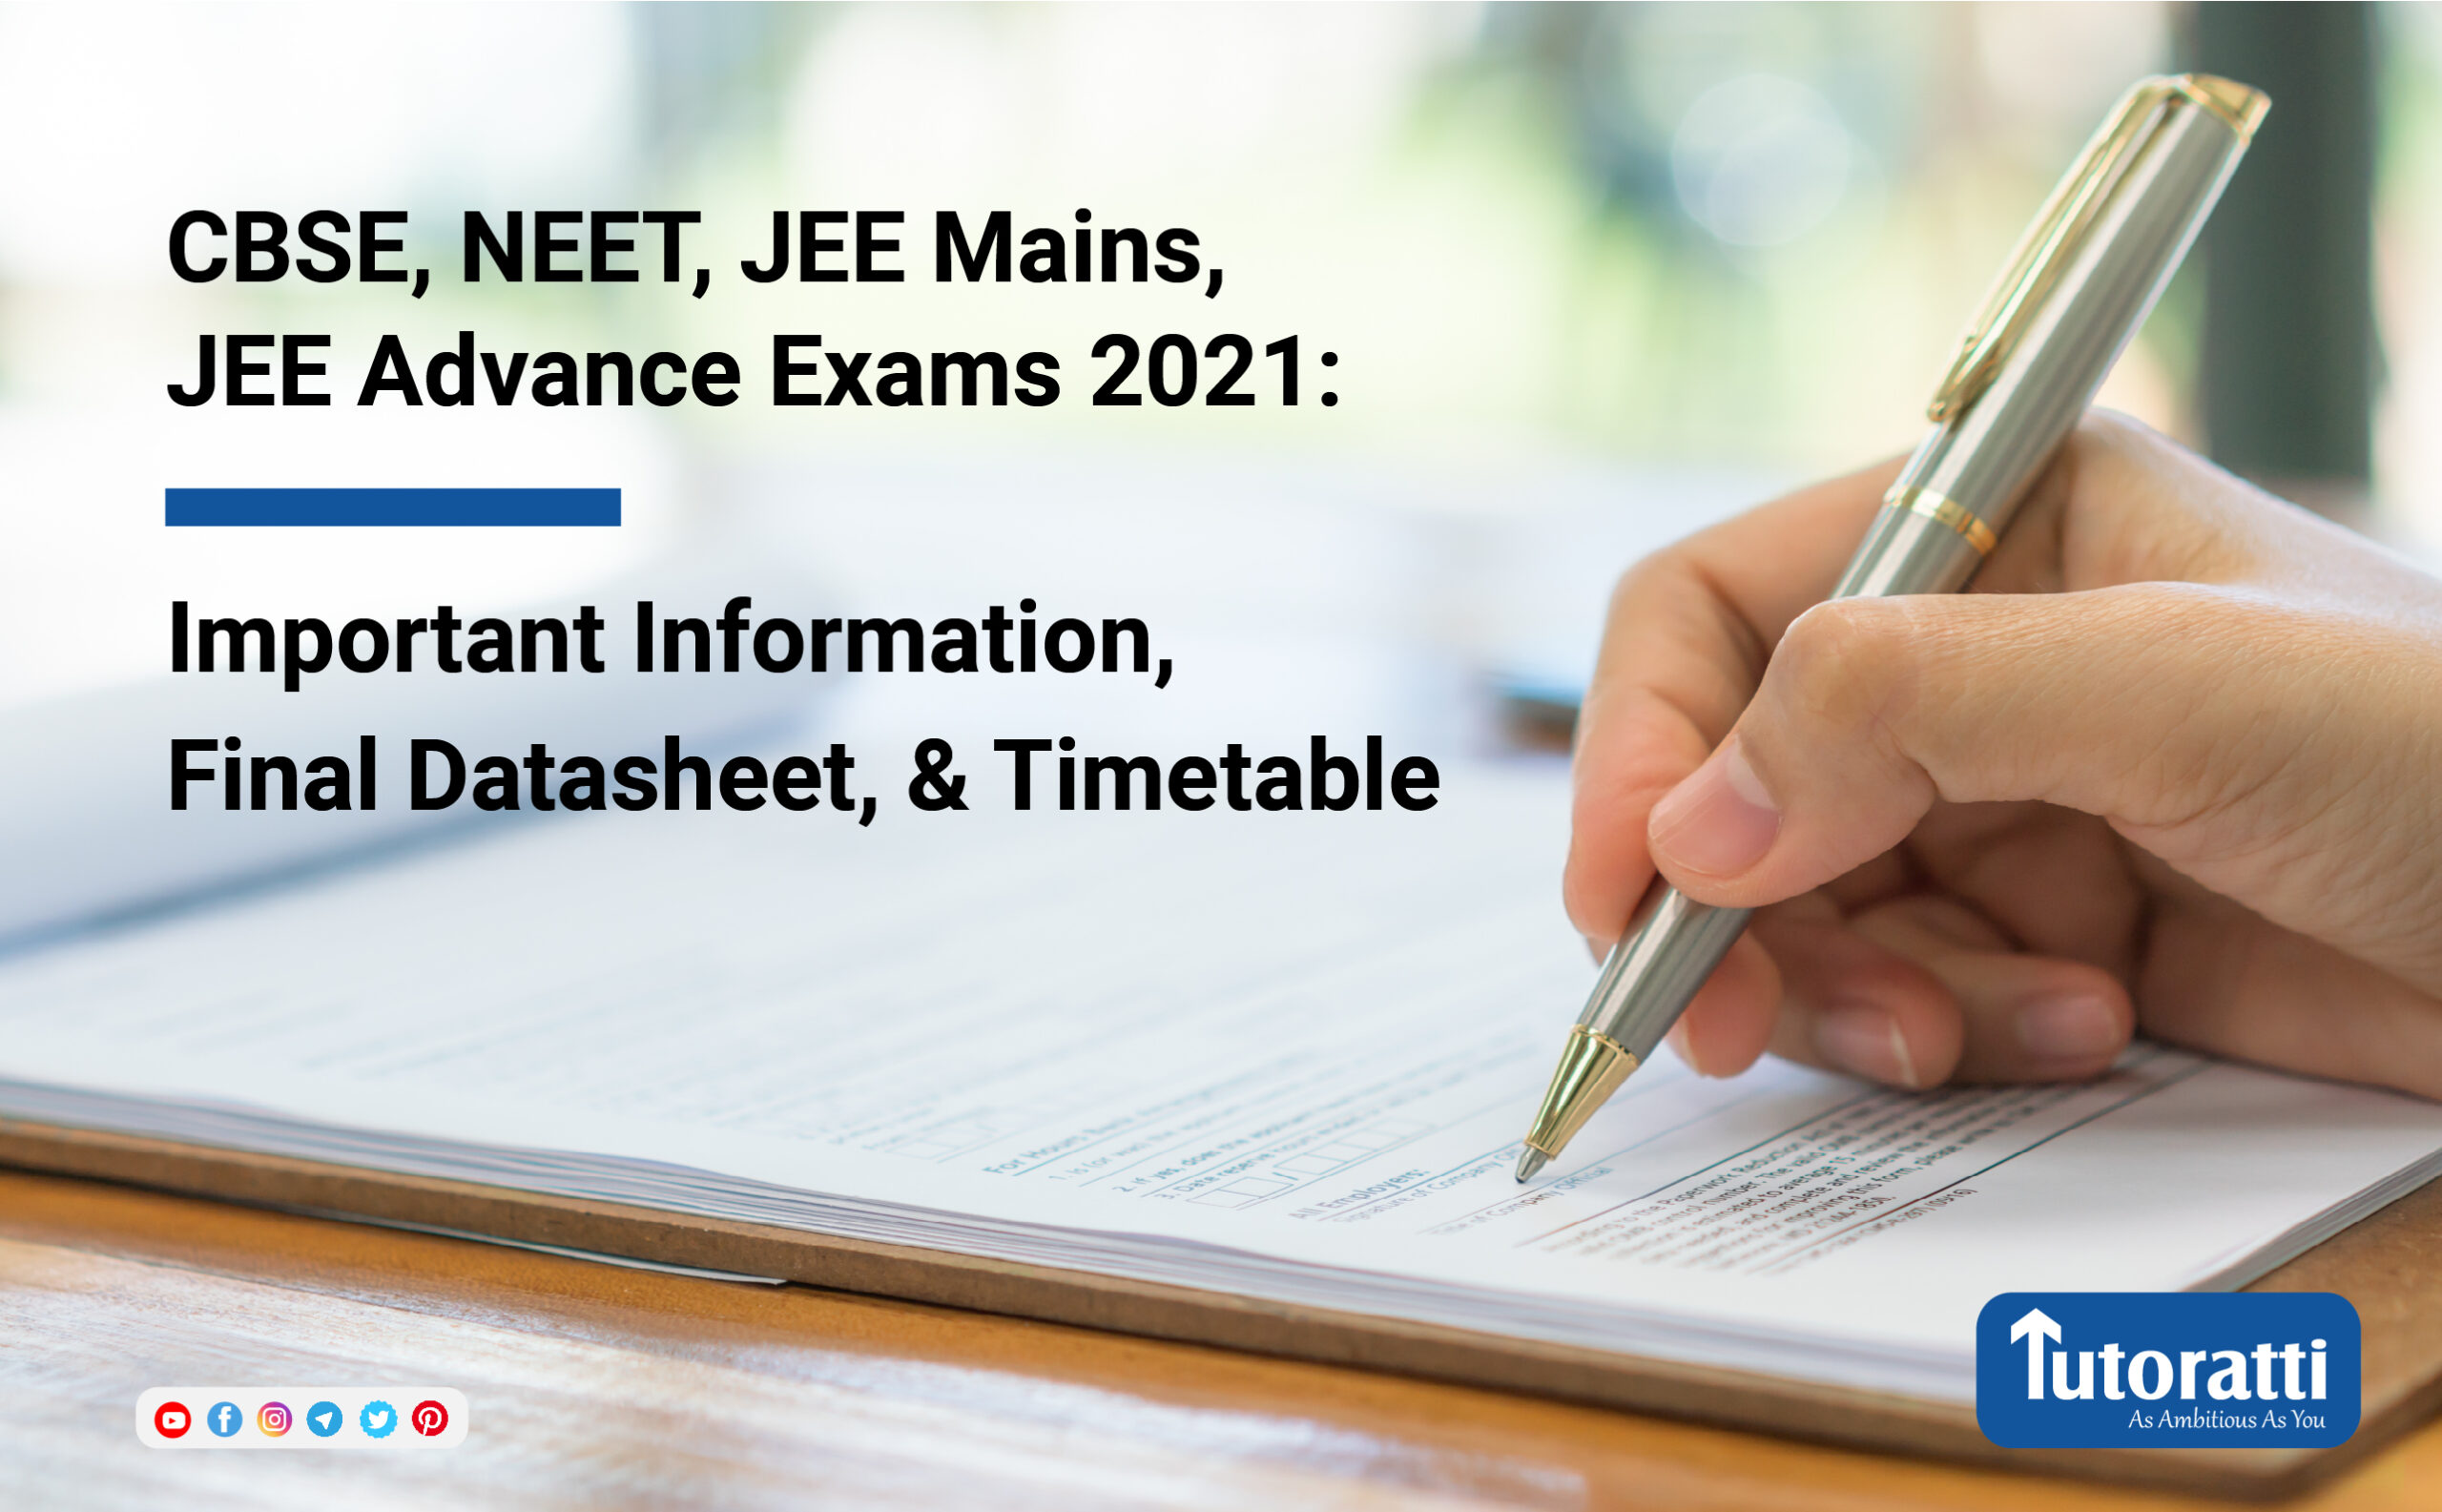 CBSE, NEET, JEE Mains, JEE Advance exams 2021: Important Information, Final Datasheet, and Timetable